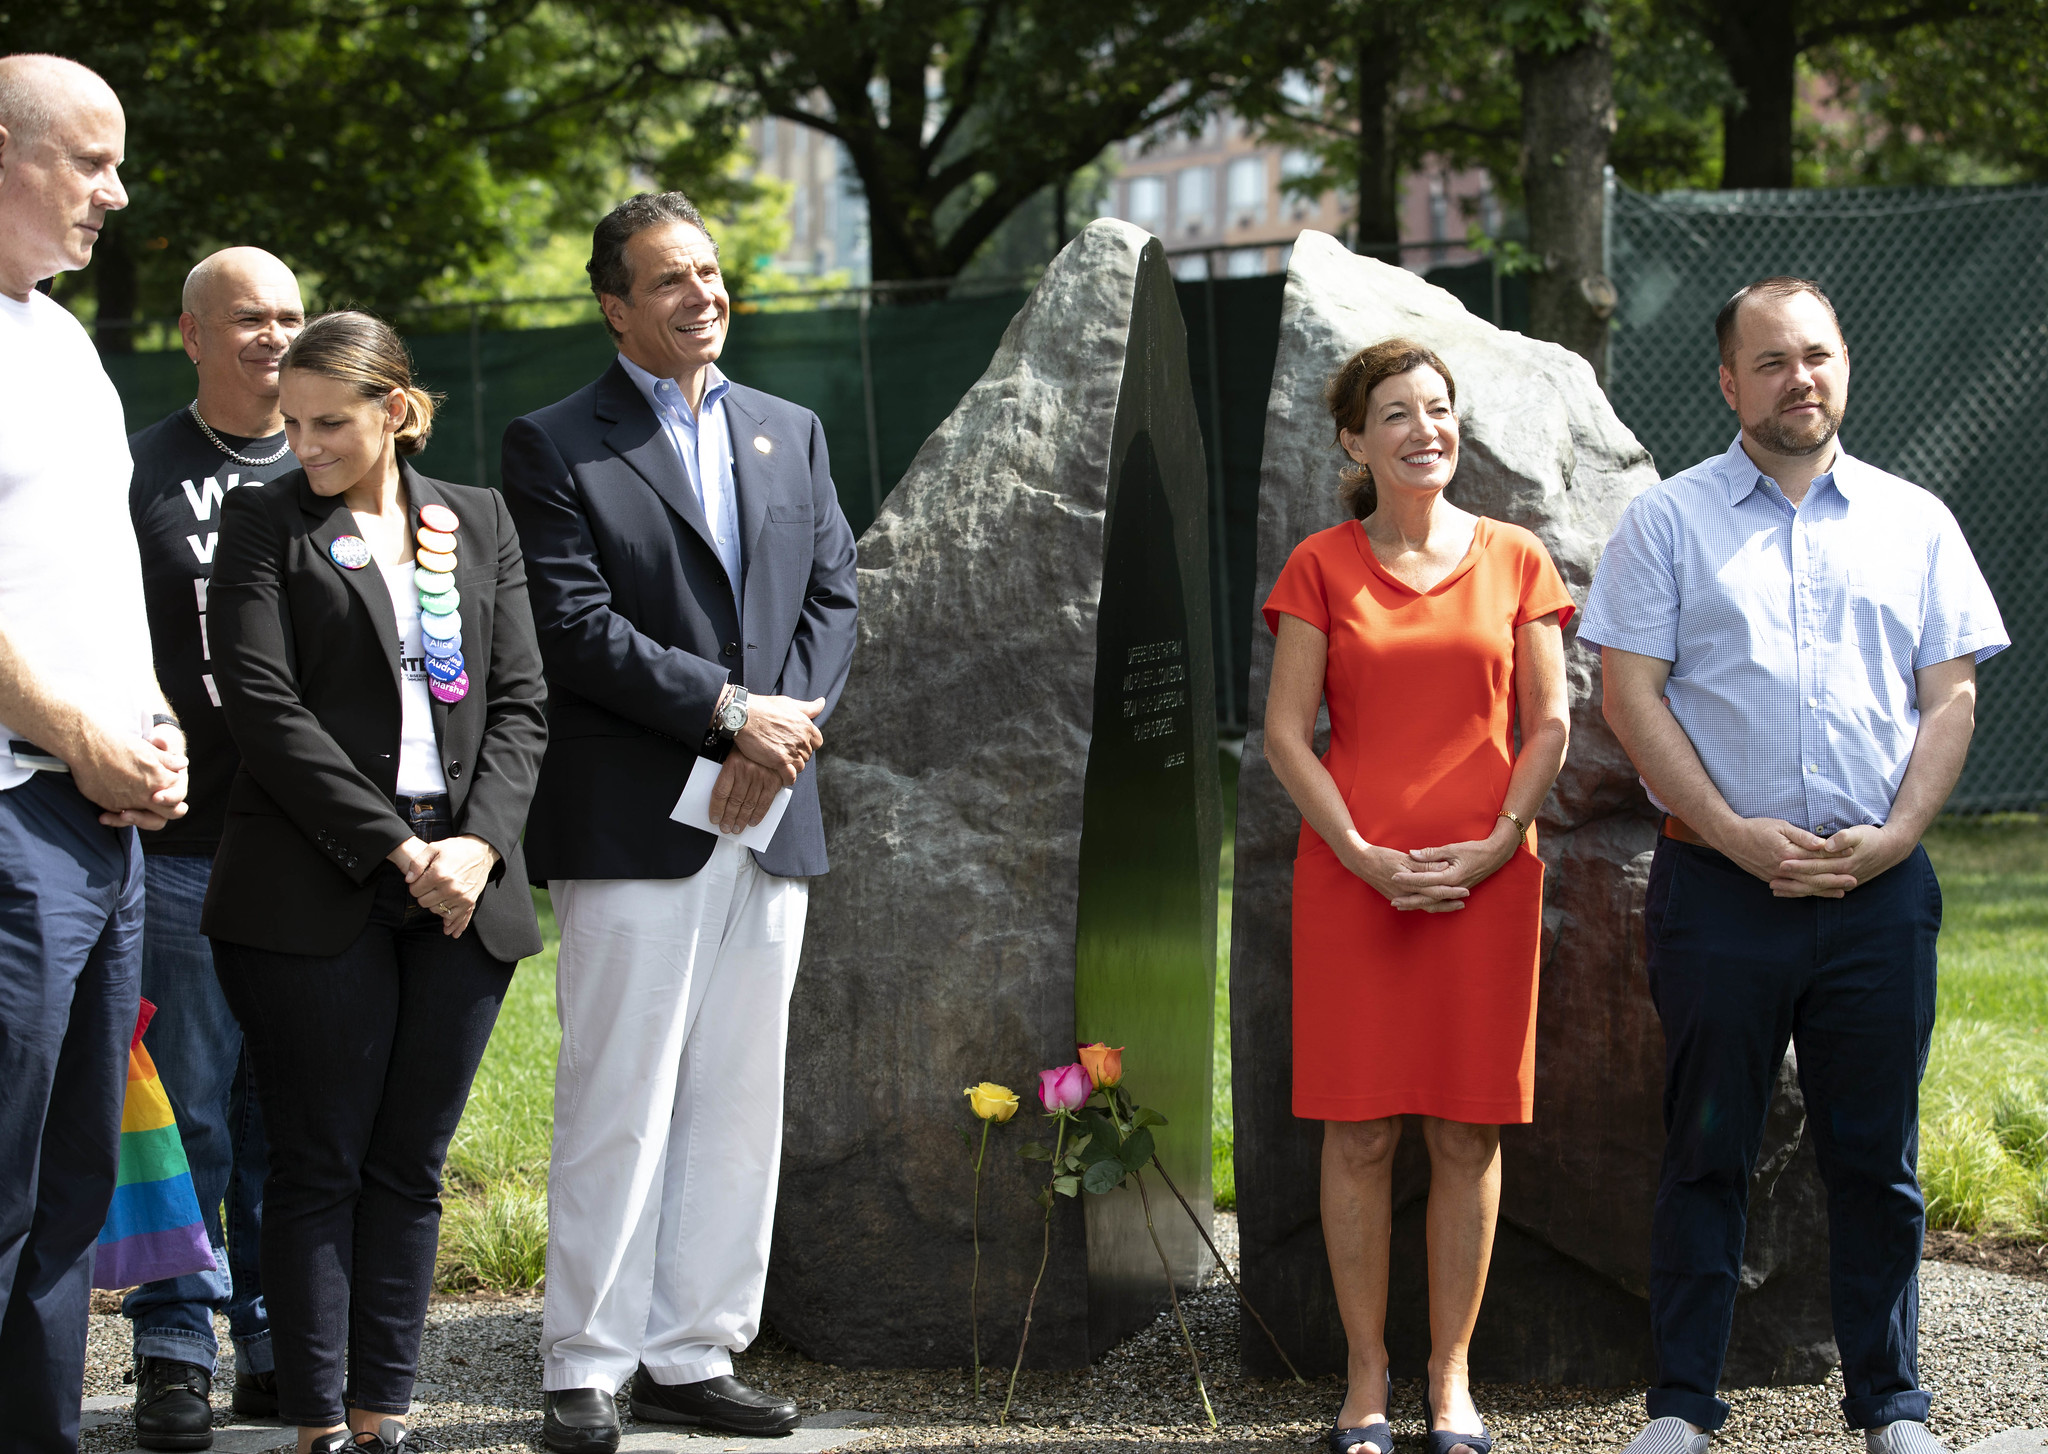 Governor Cuomo Announces Opening of LGBT Memorial Honoring Lives Lost to Hate and Intolerance